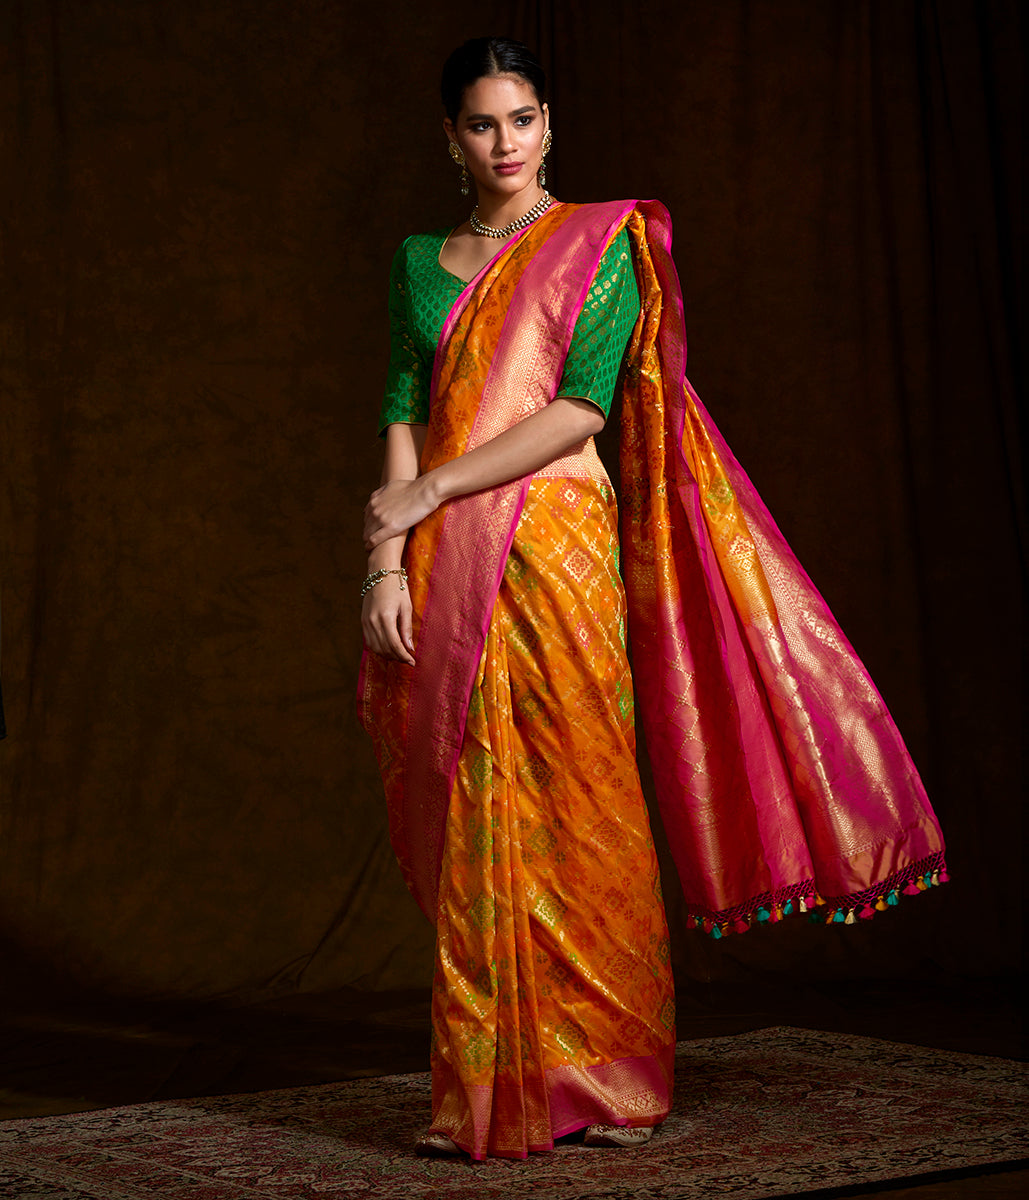 Handwoven Banarasi Patola saree in orange with pink border